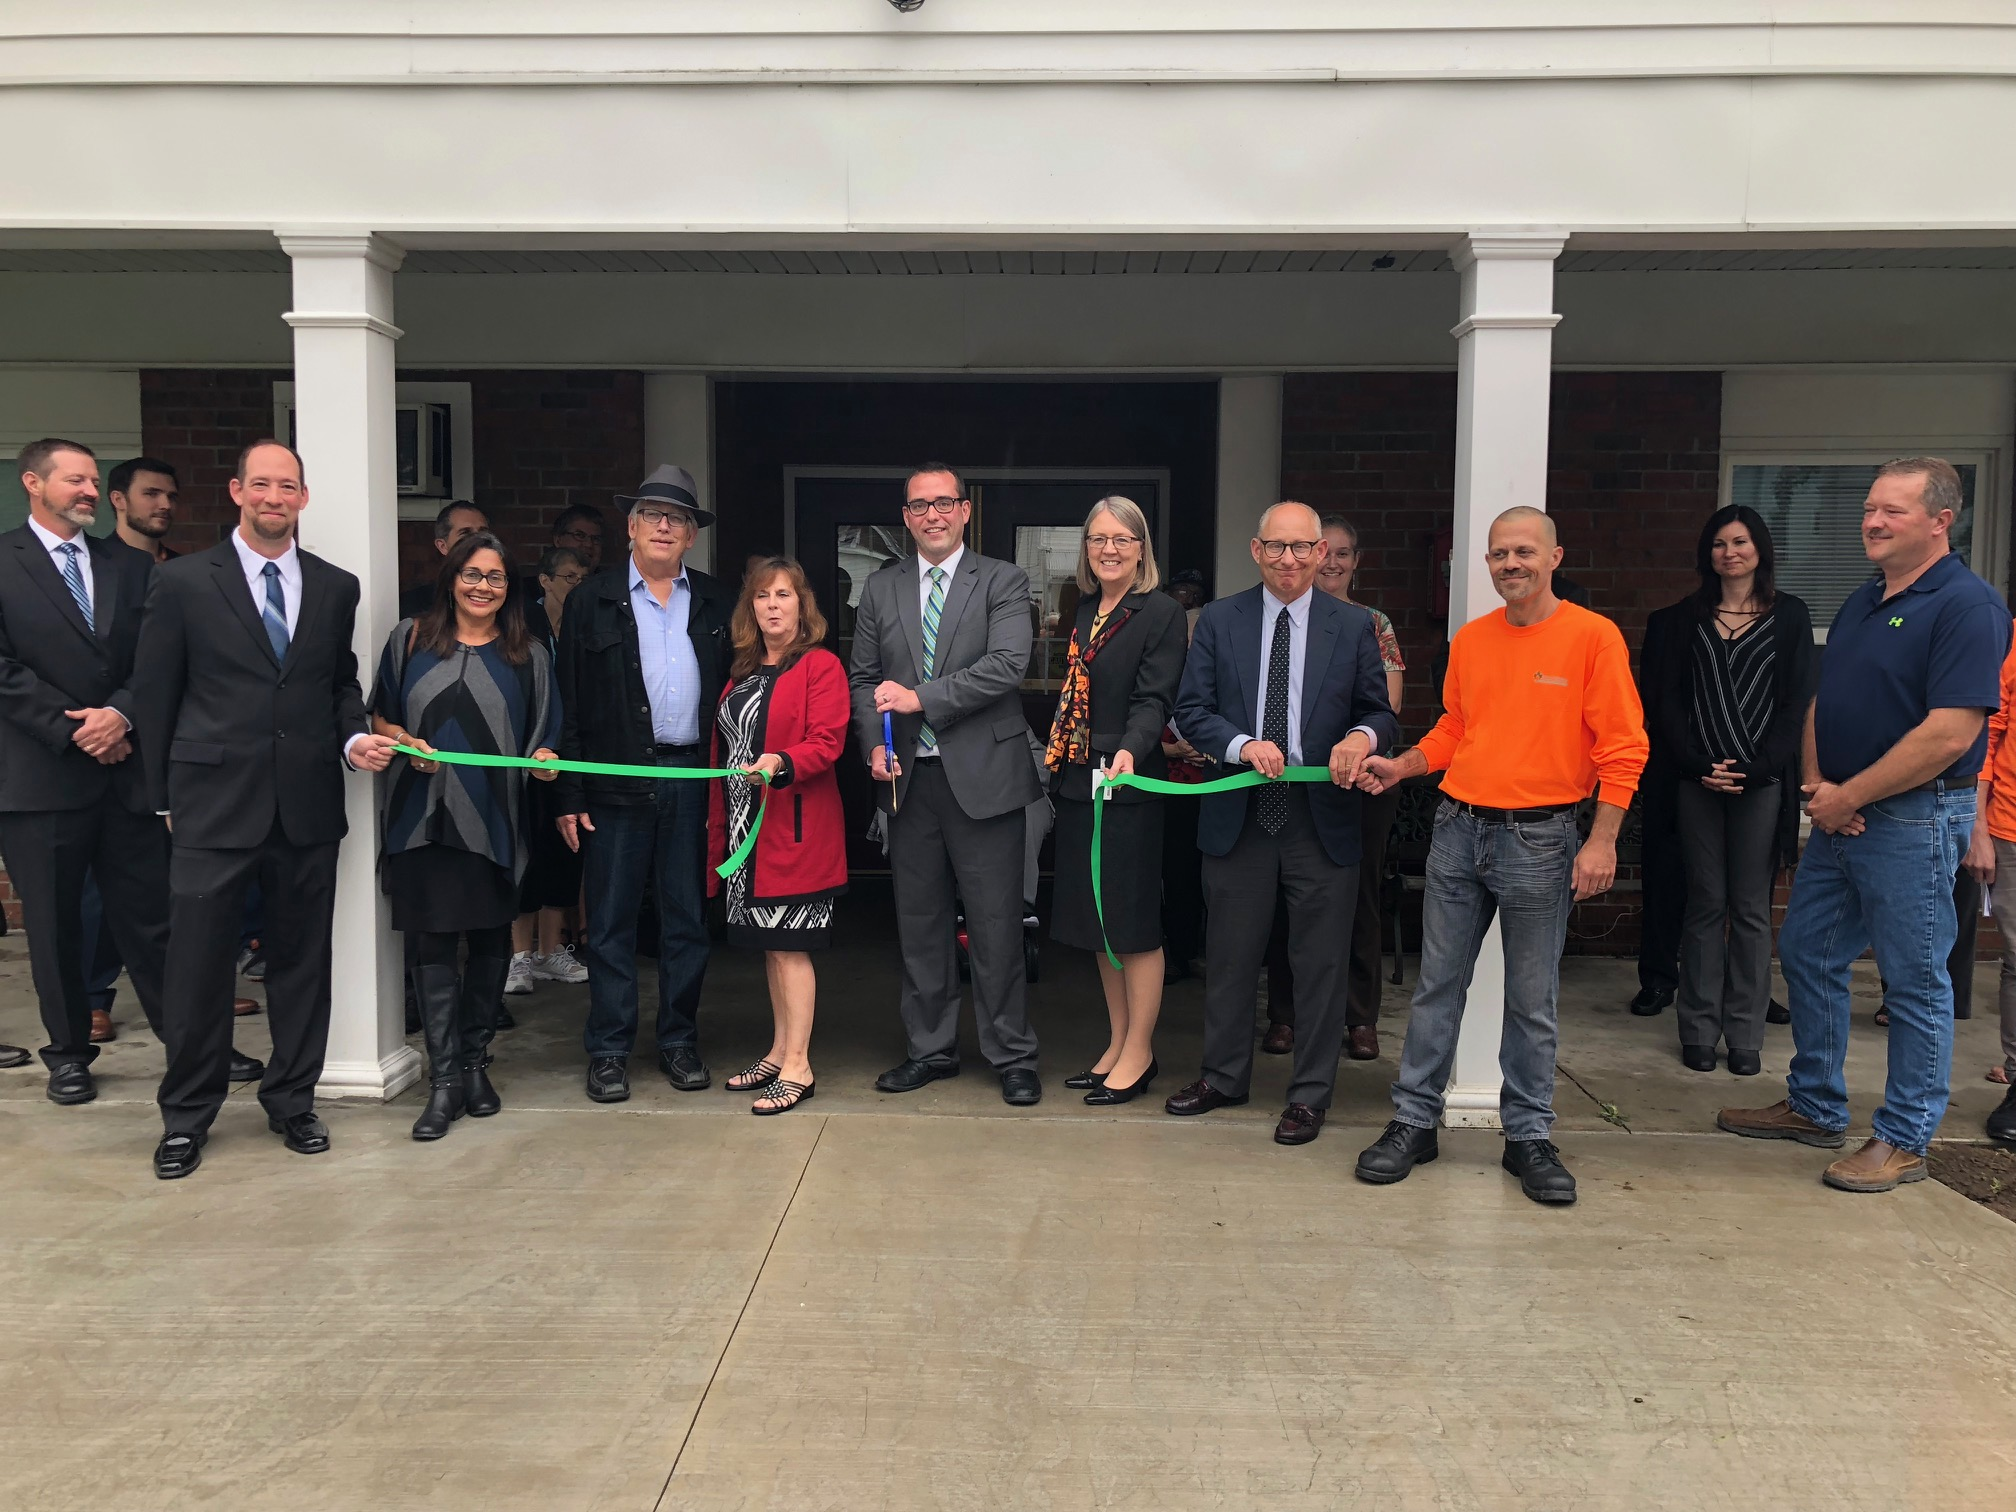 Hornell Community Apartments Ribbon Cutting Ceremony